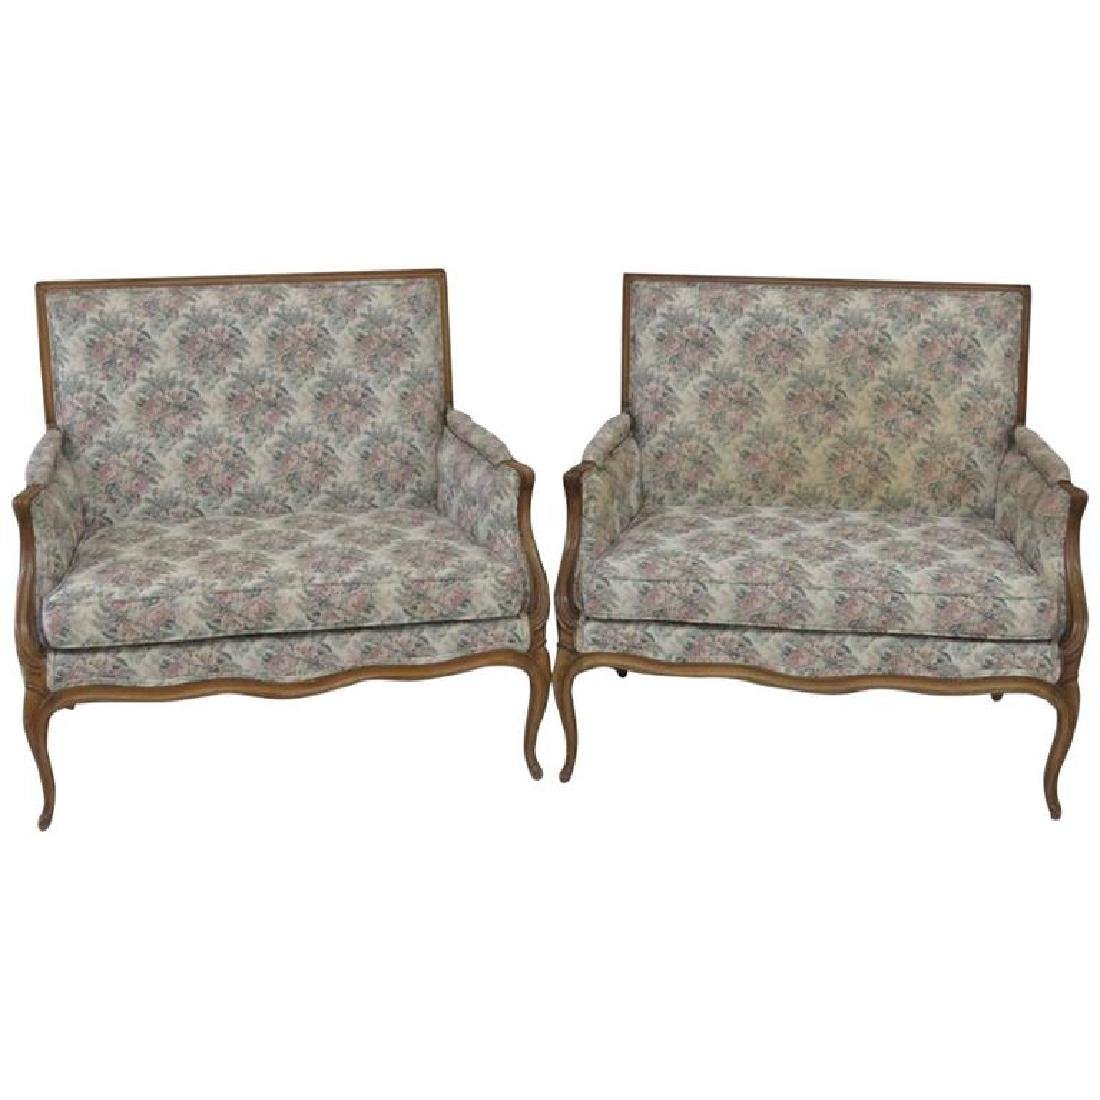 Pair of French Style Marquis